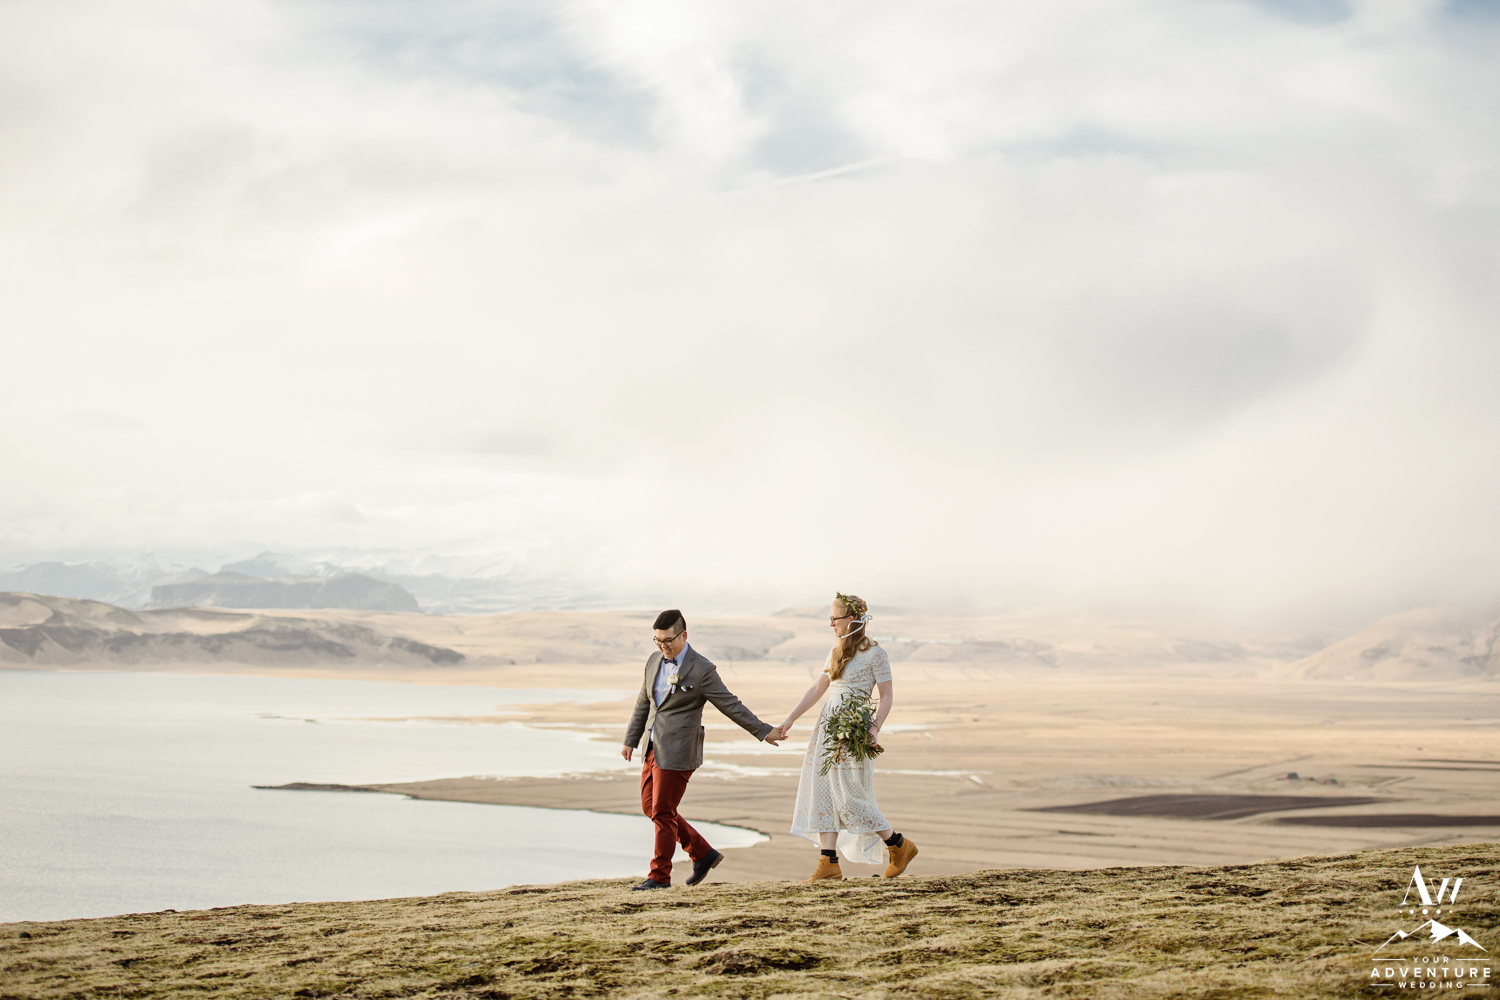 Groom adventuring with his bride on Iceland mountain